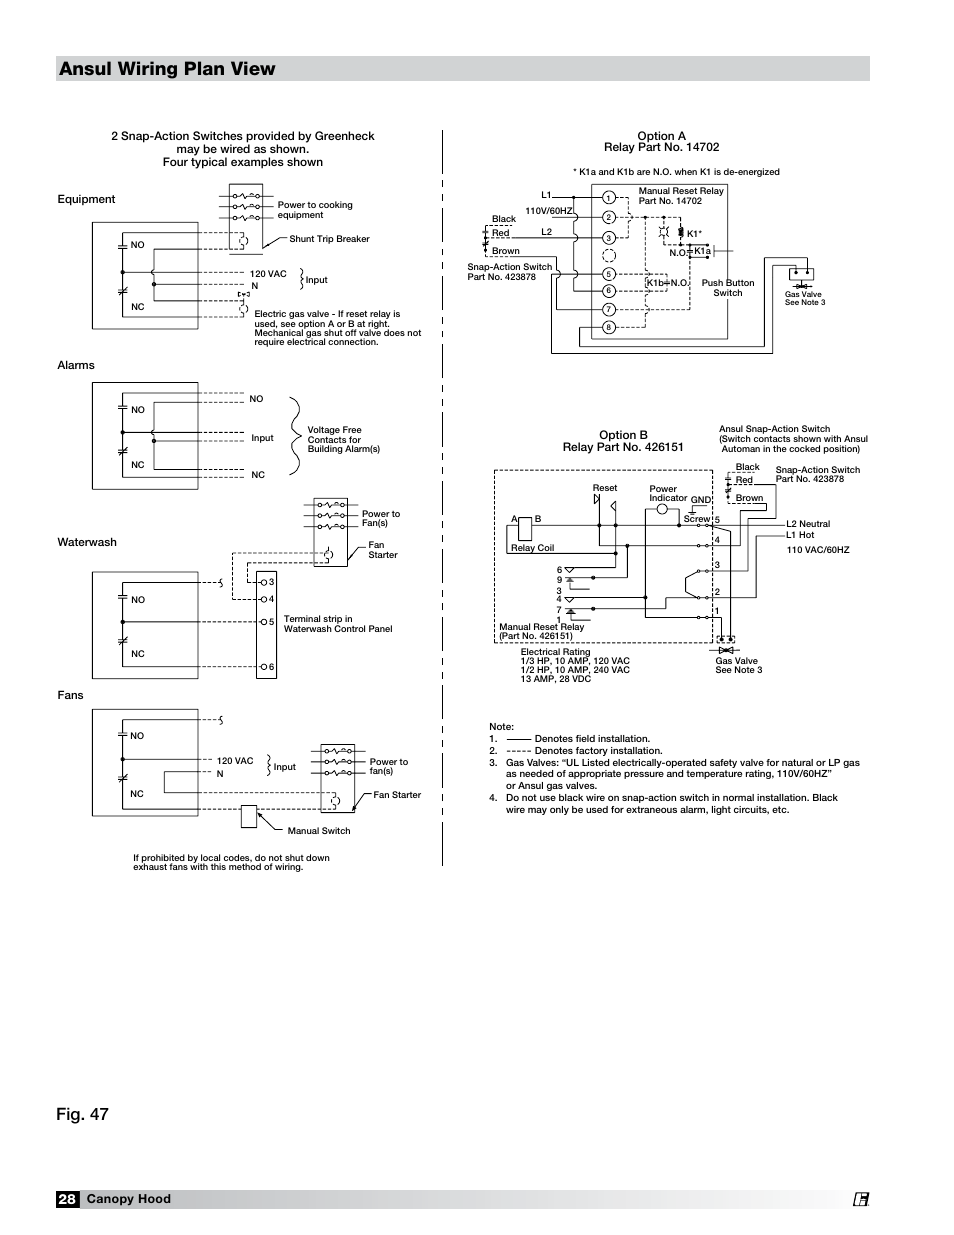 greenheck fan 452413 page28 field wiring for the ansul snap action switch, ansul wiring plan ansul system wiring diagram hood at bakdesigns.co